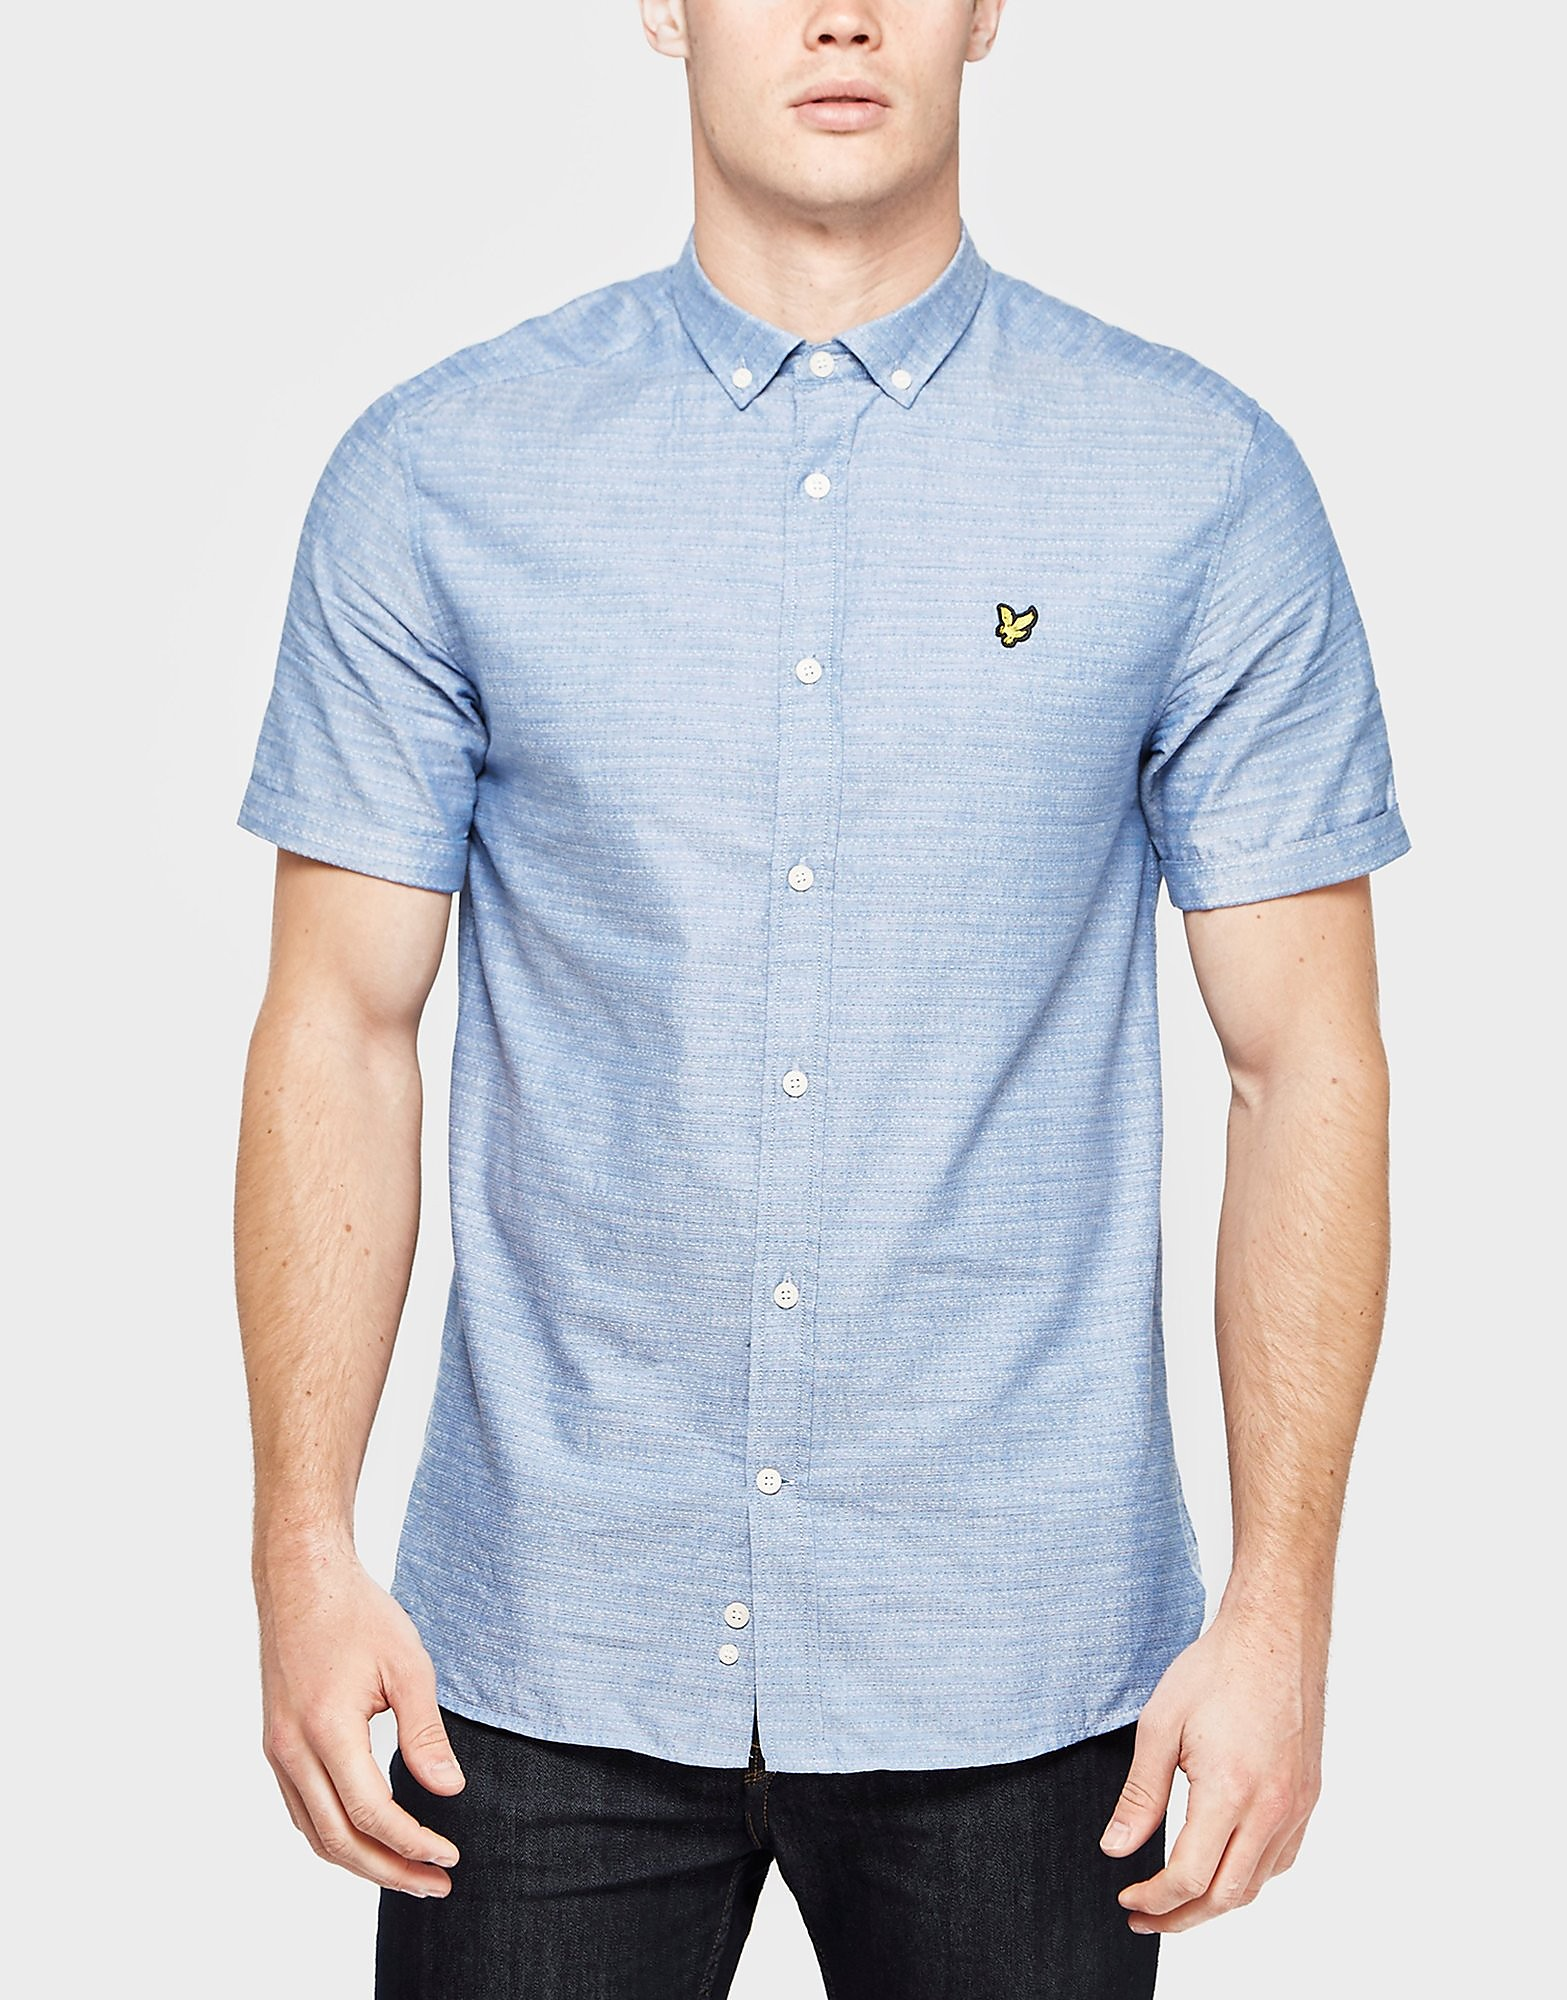 Lyle & Scott Running Stitch Shirt